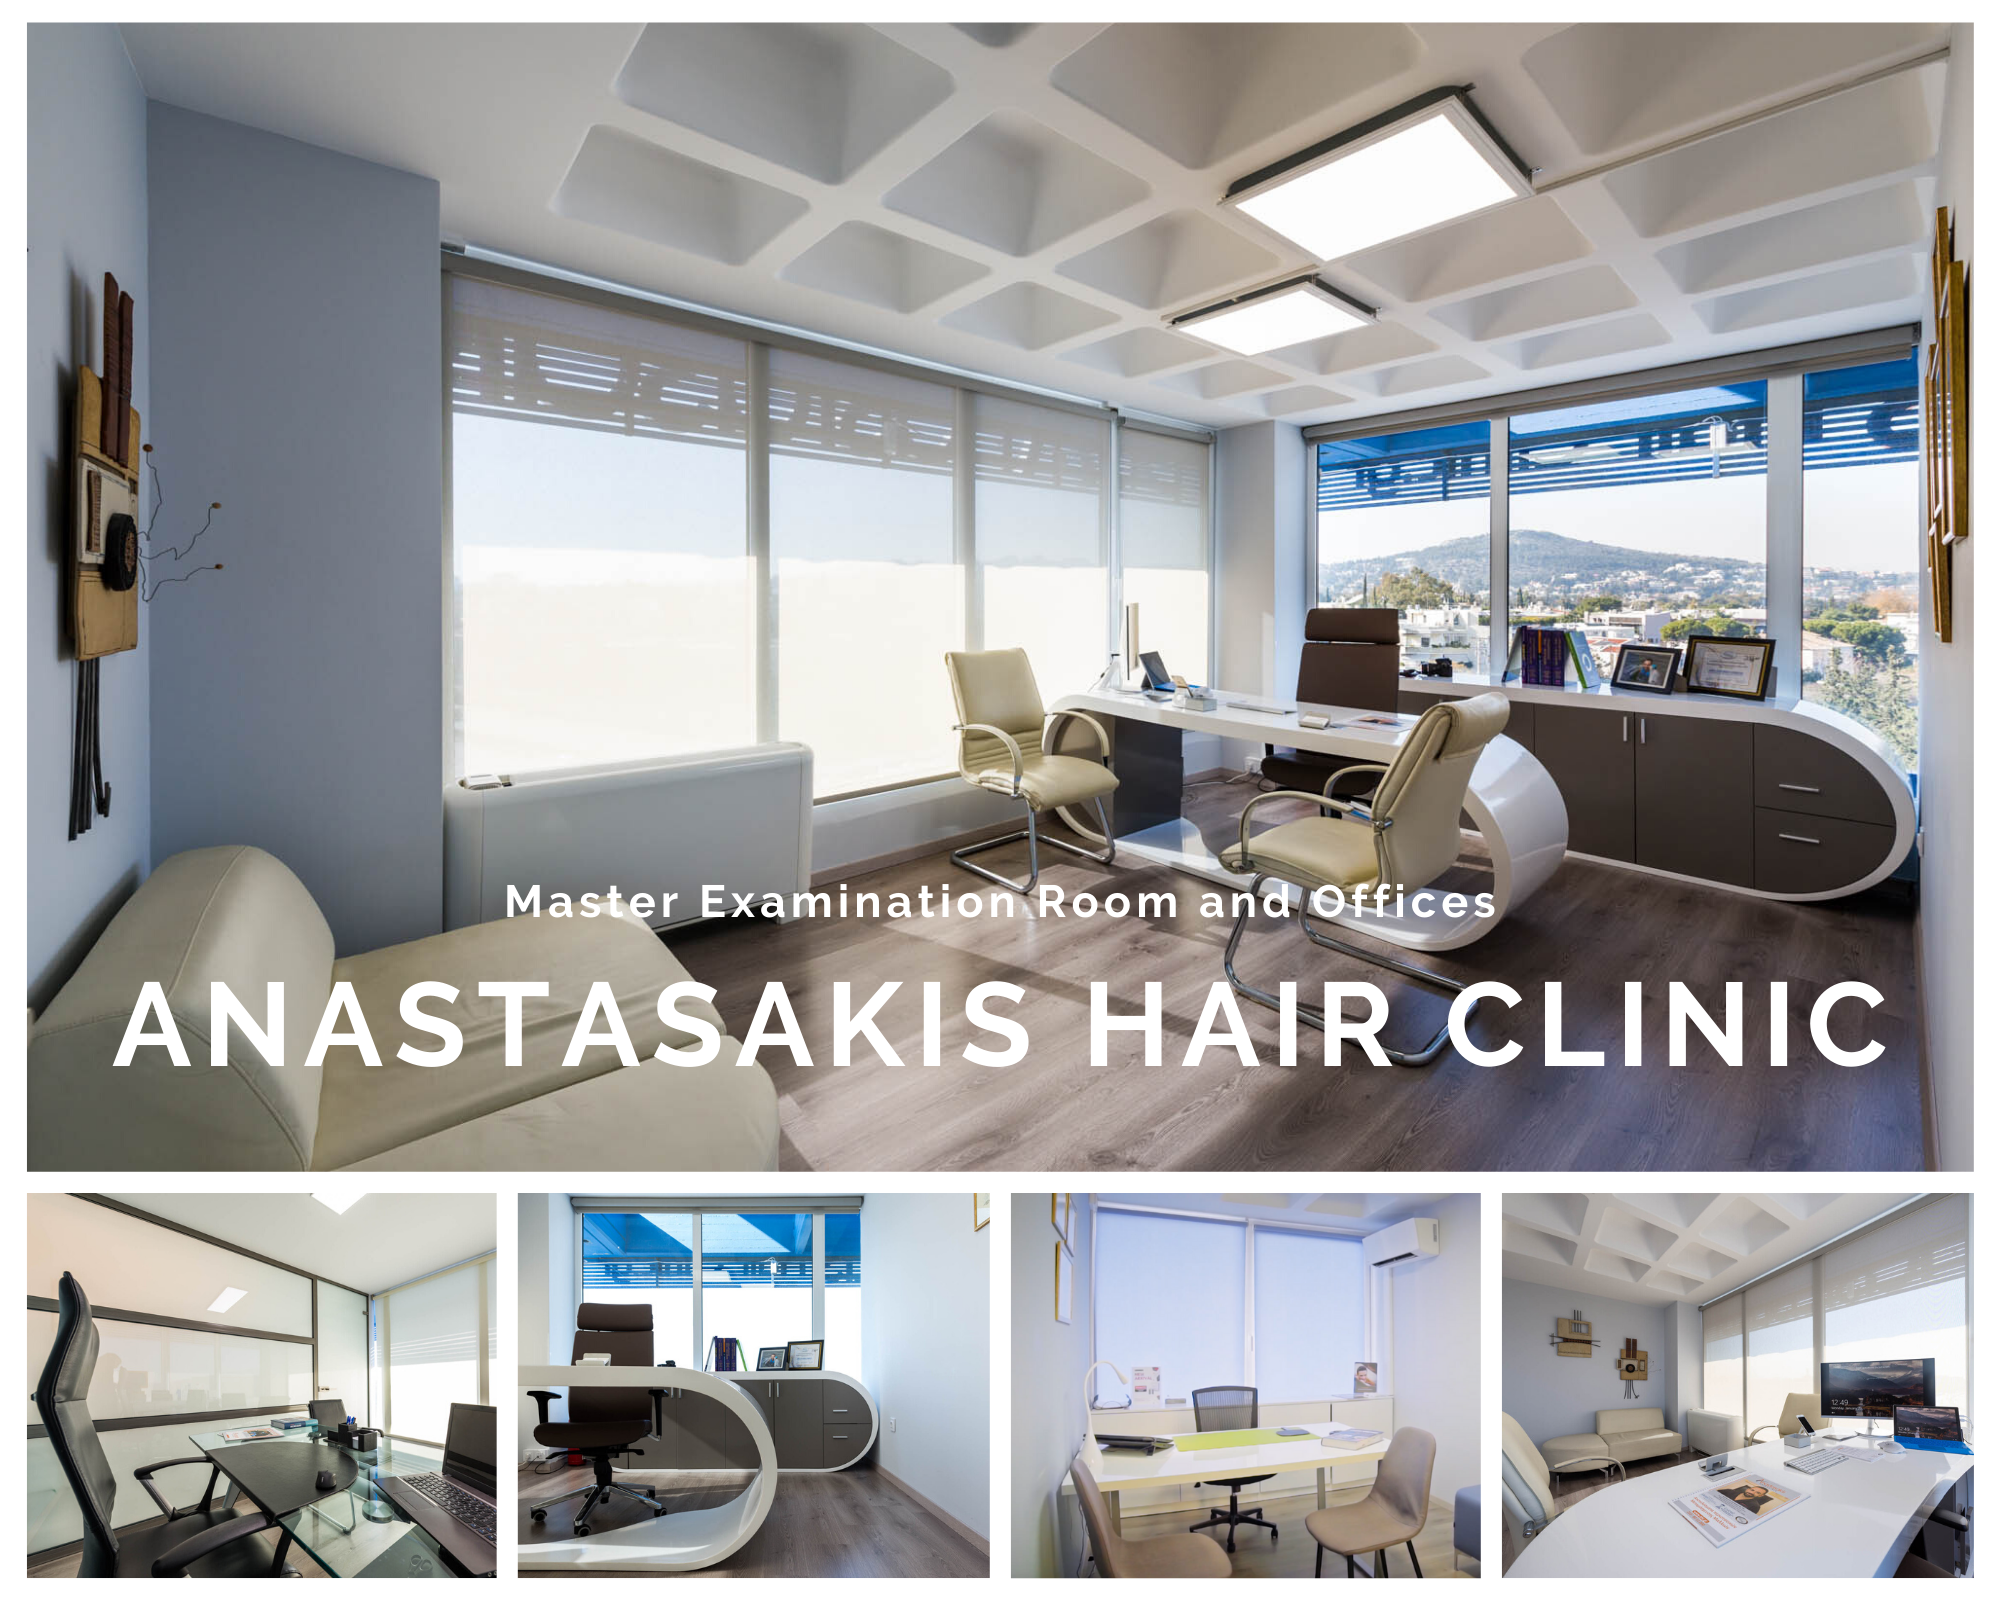 anastasakis hair clinic_ Master Examination Room and Offices